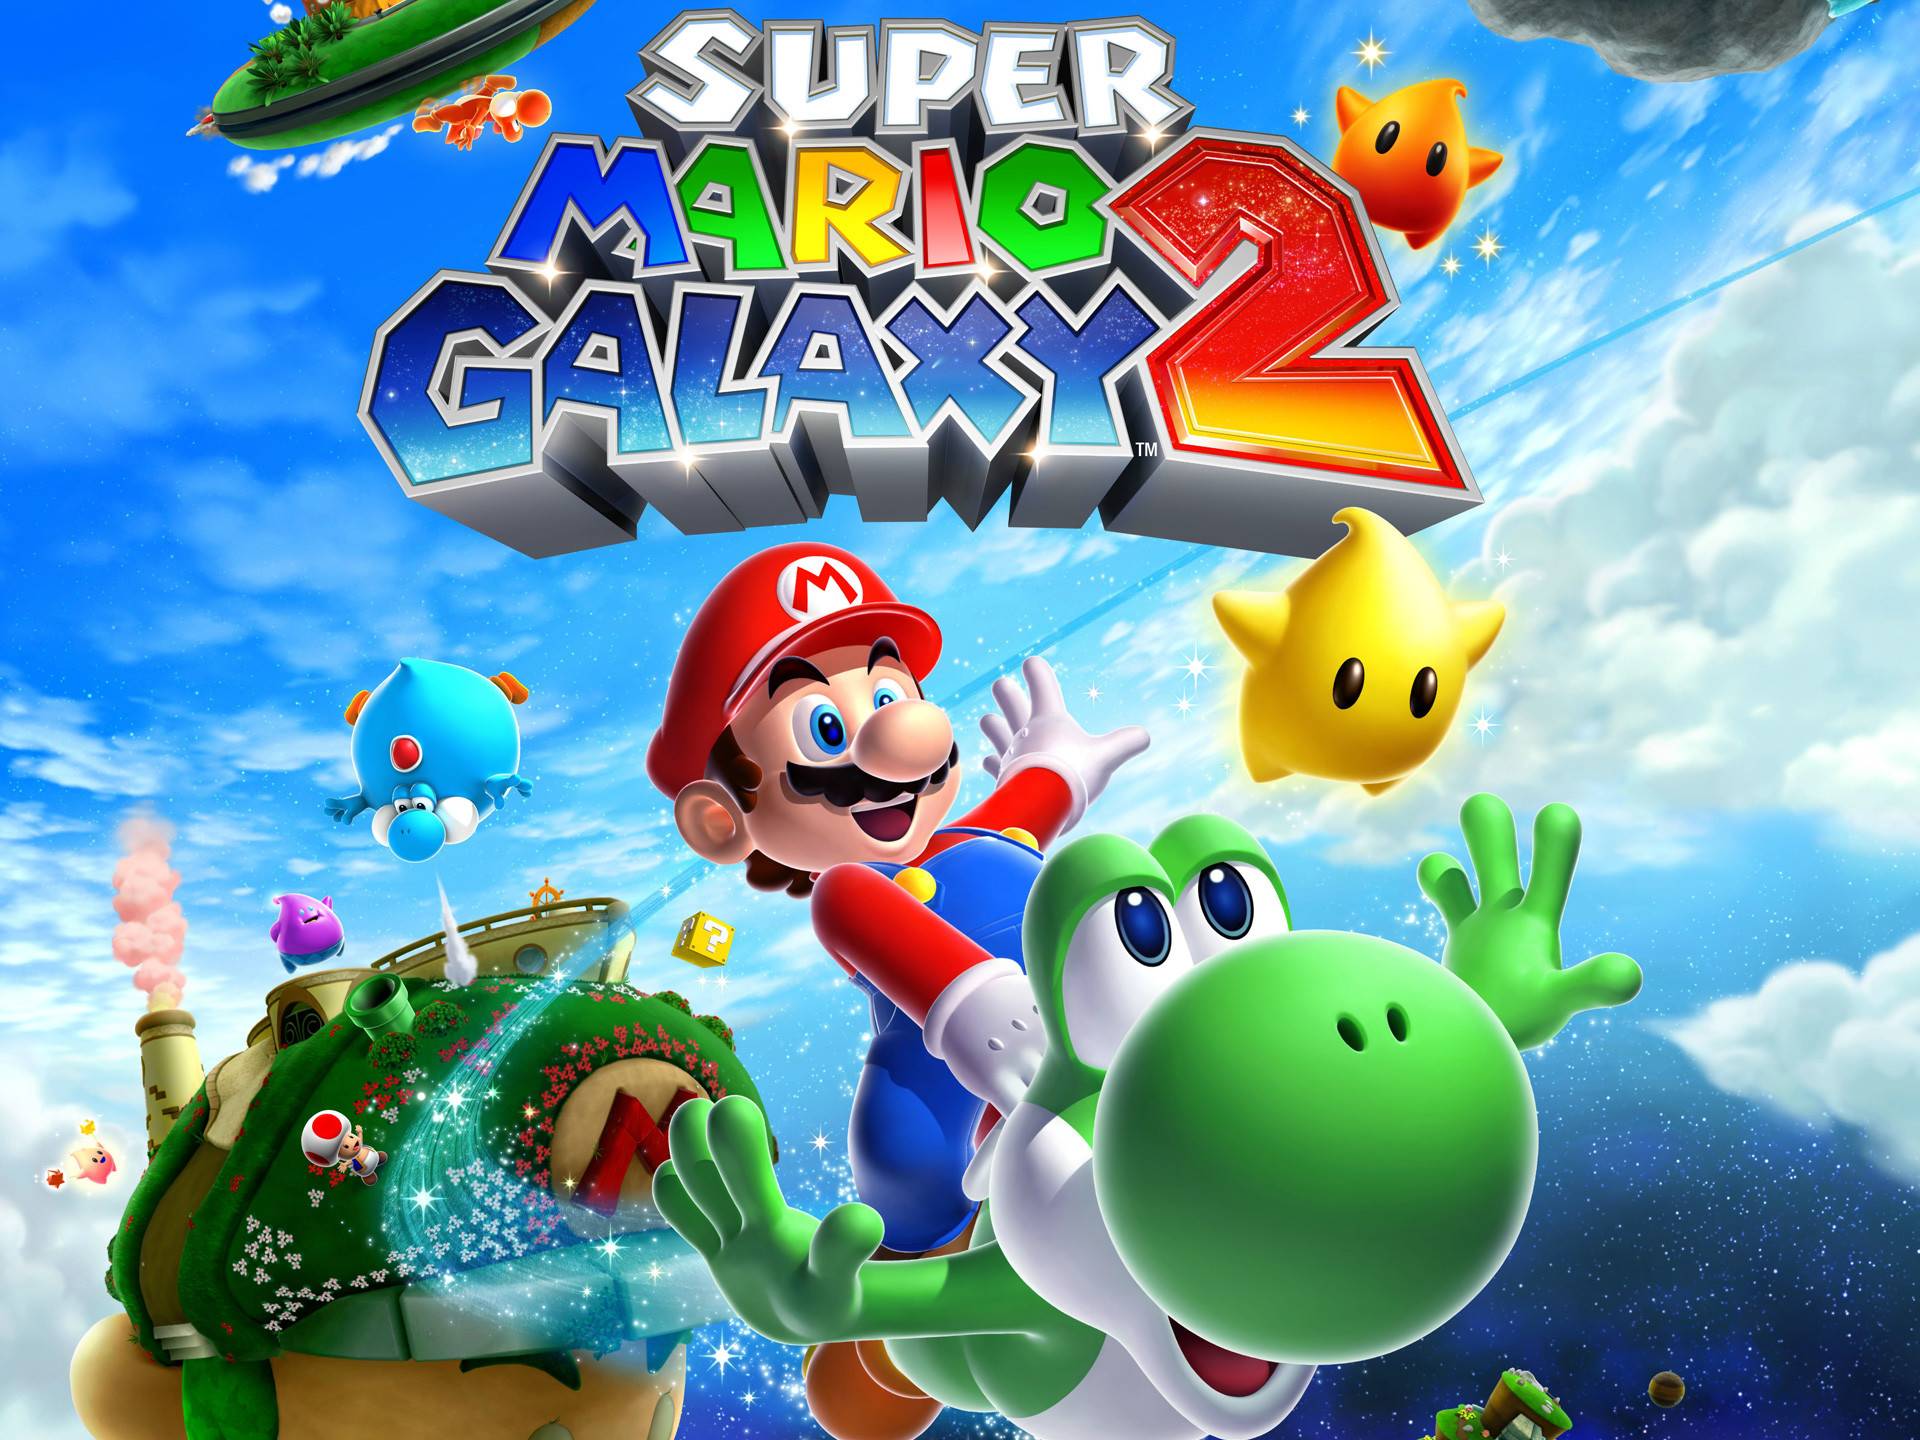 Super Mario Galaxy 2 Wallpaper Hd 77 Pictures